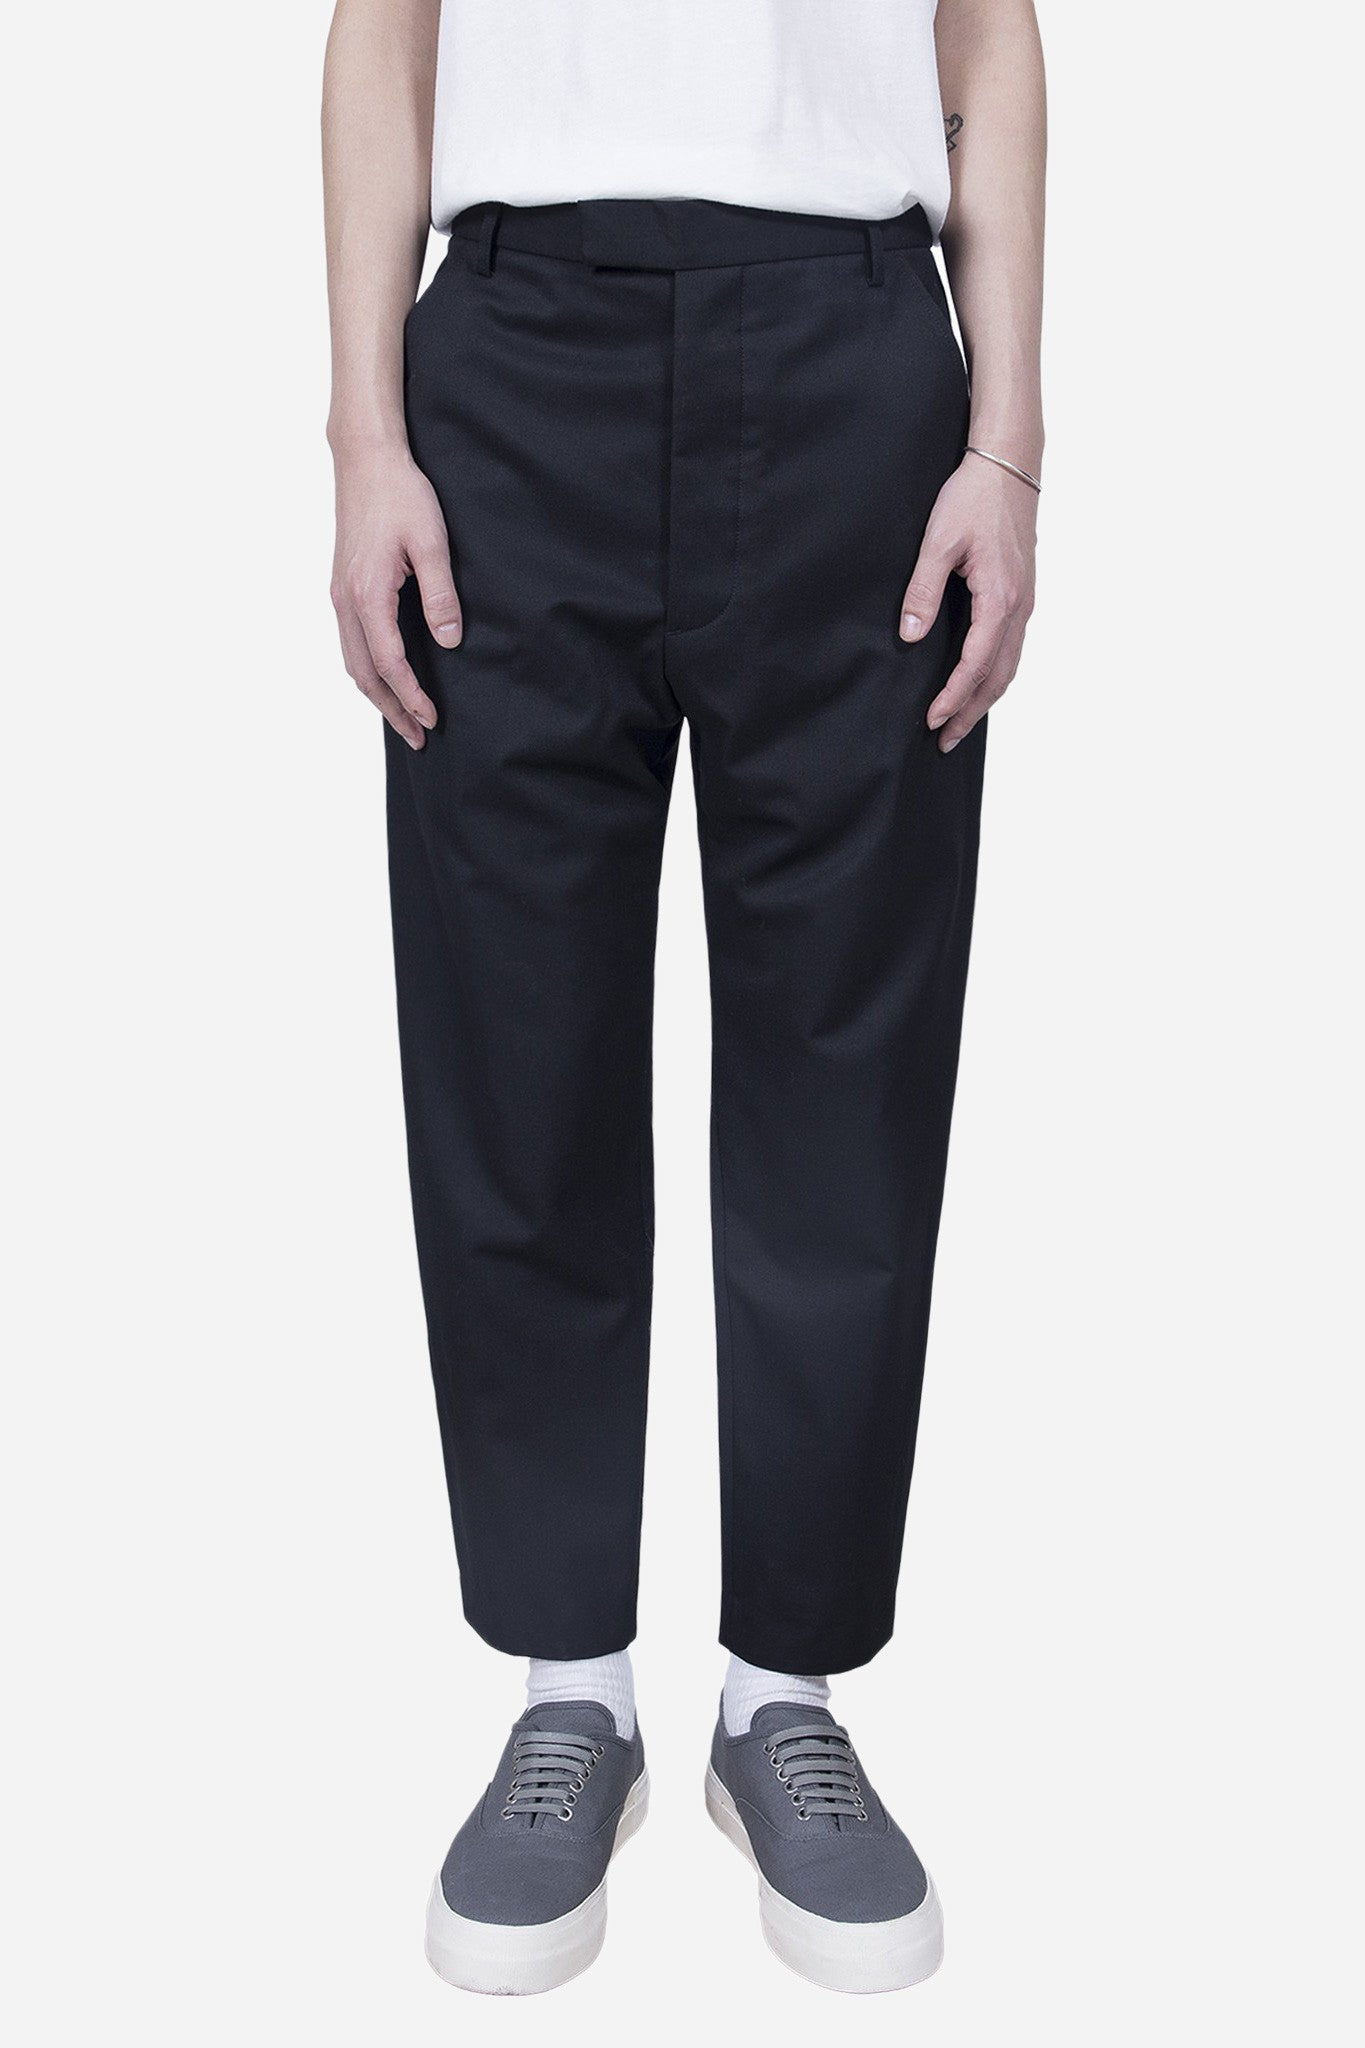 Marlboro Cropped Pant Black